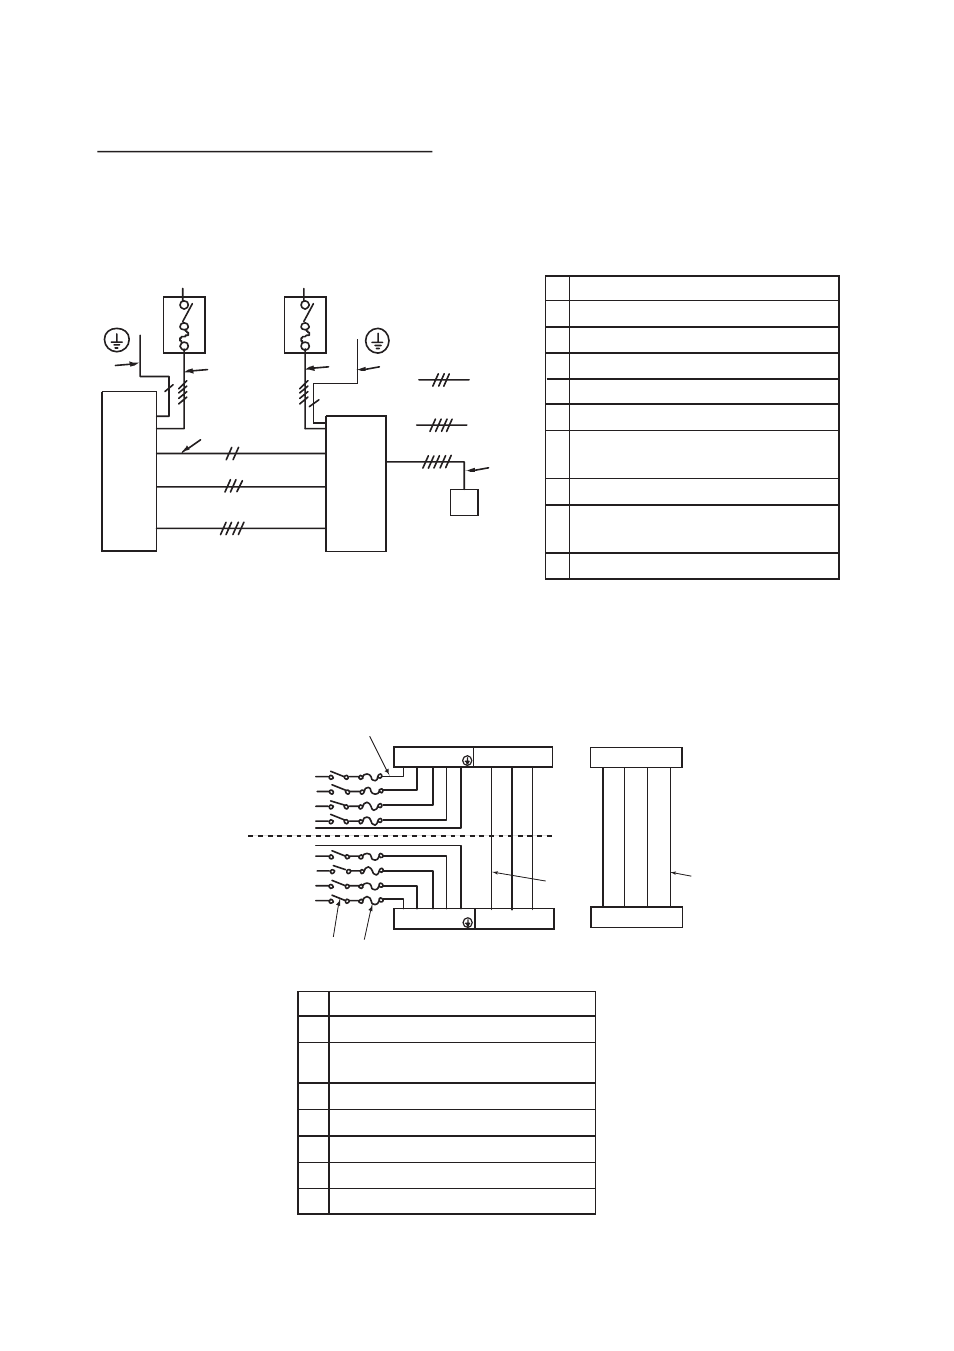 Method For Connecting Electric Wire Mitsubishi Pe 15myc Electrical Wiring Diagrams 101 User Manual Page 115